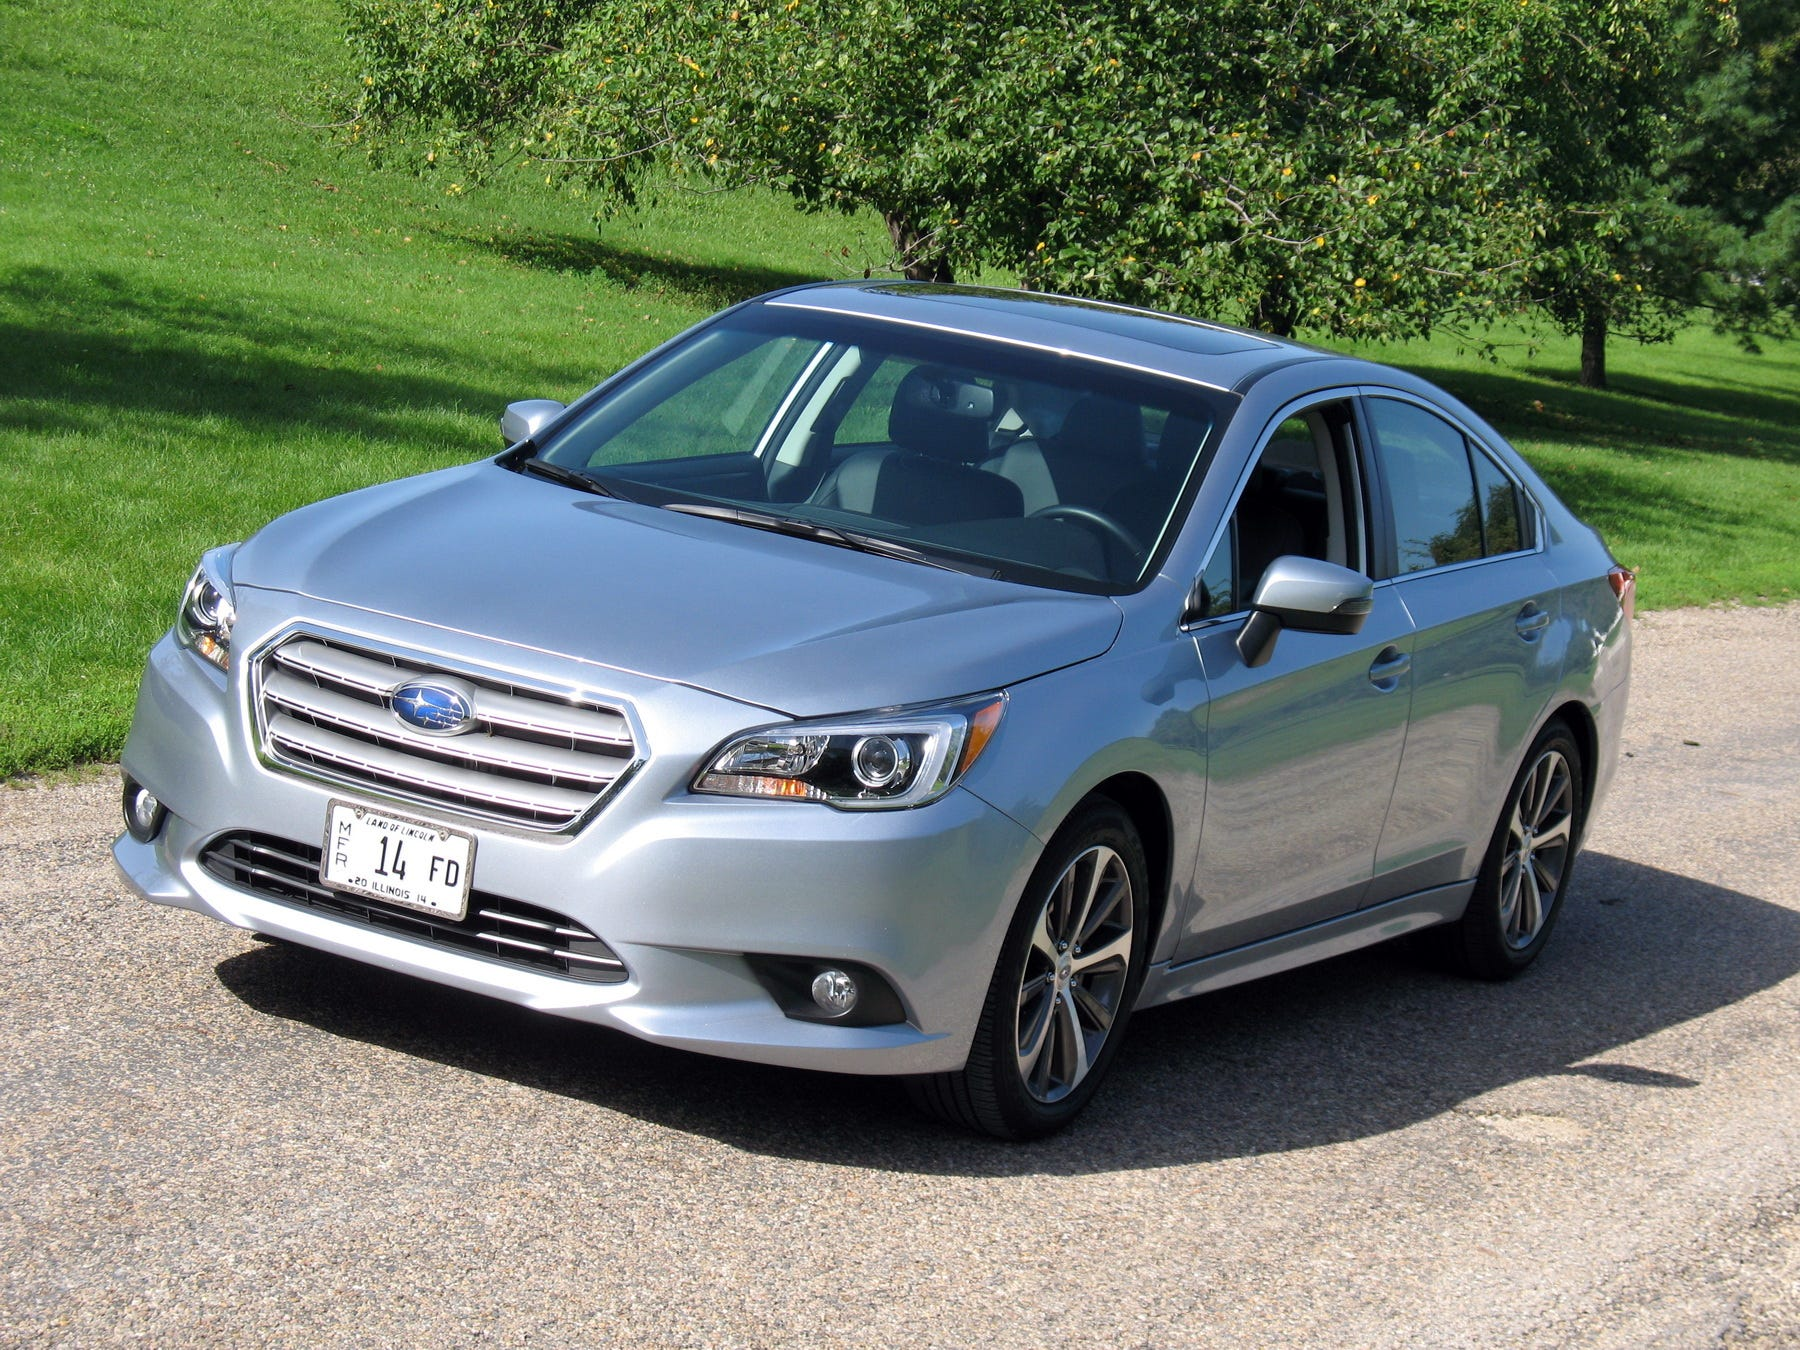 Subaru Legacy: Cargo area cover (if equipped)